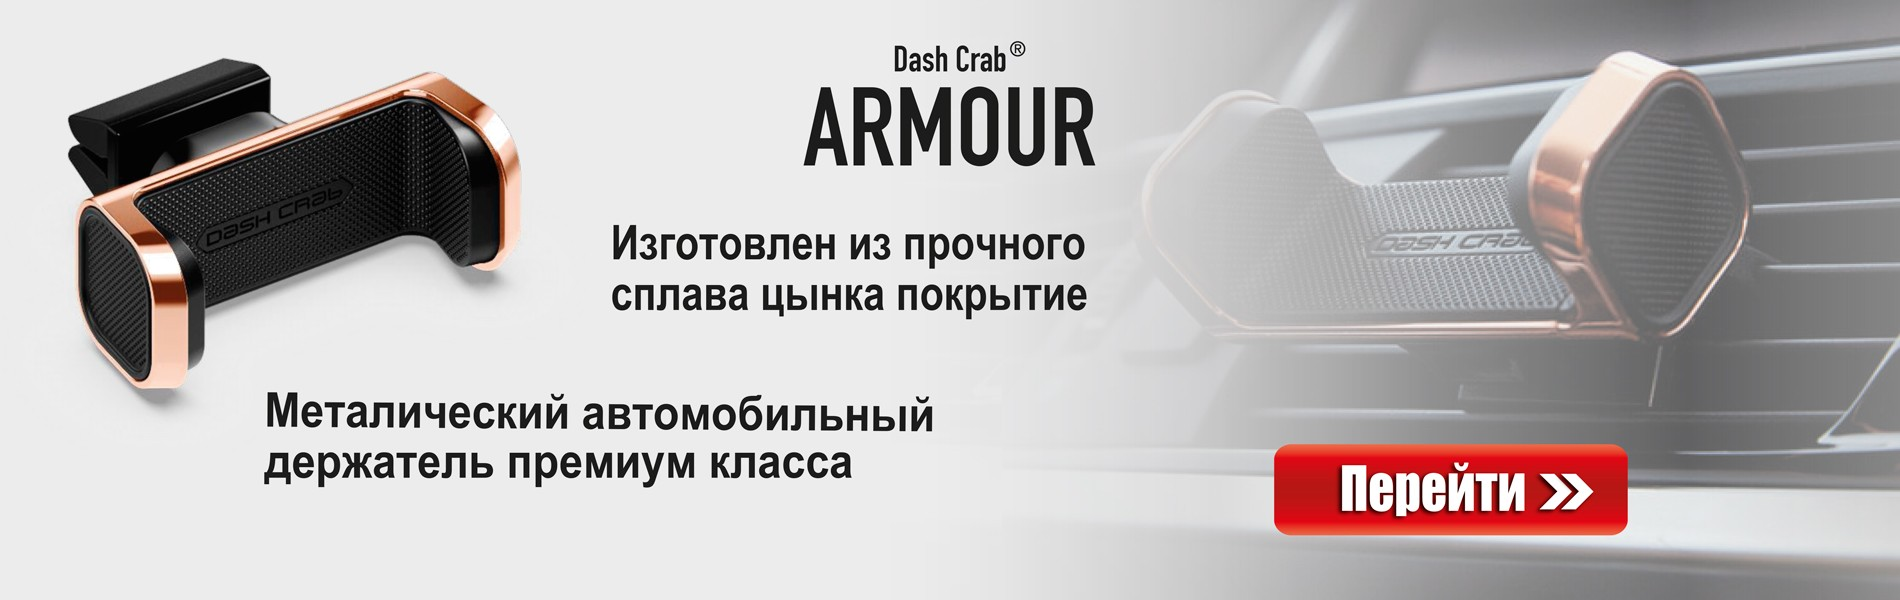 Dash Crab Aromour